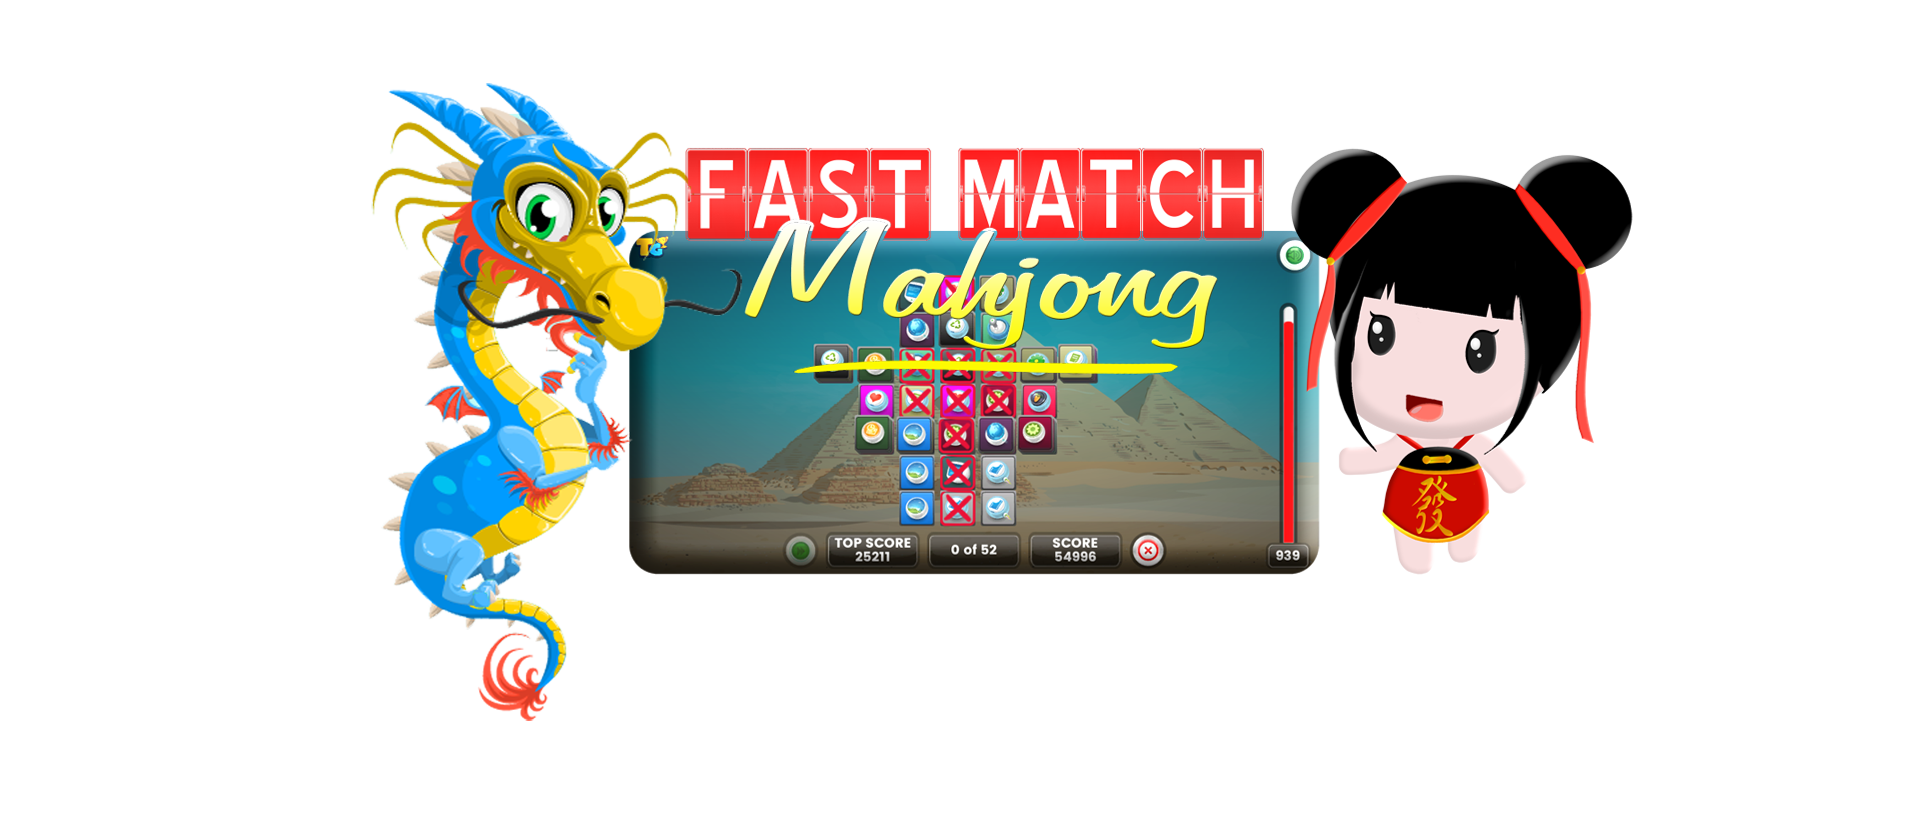 Mahjong Online Game Tournaments